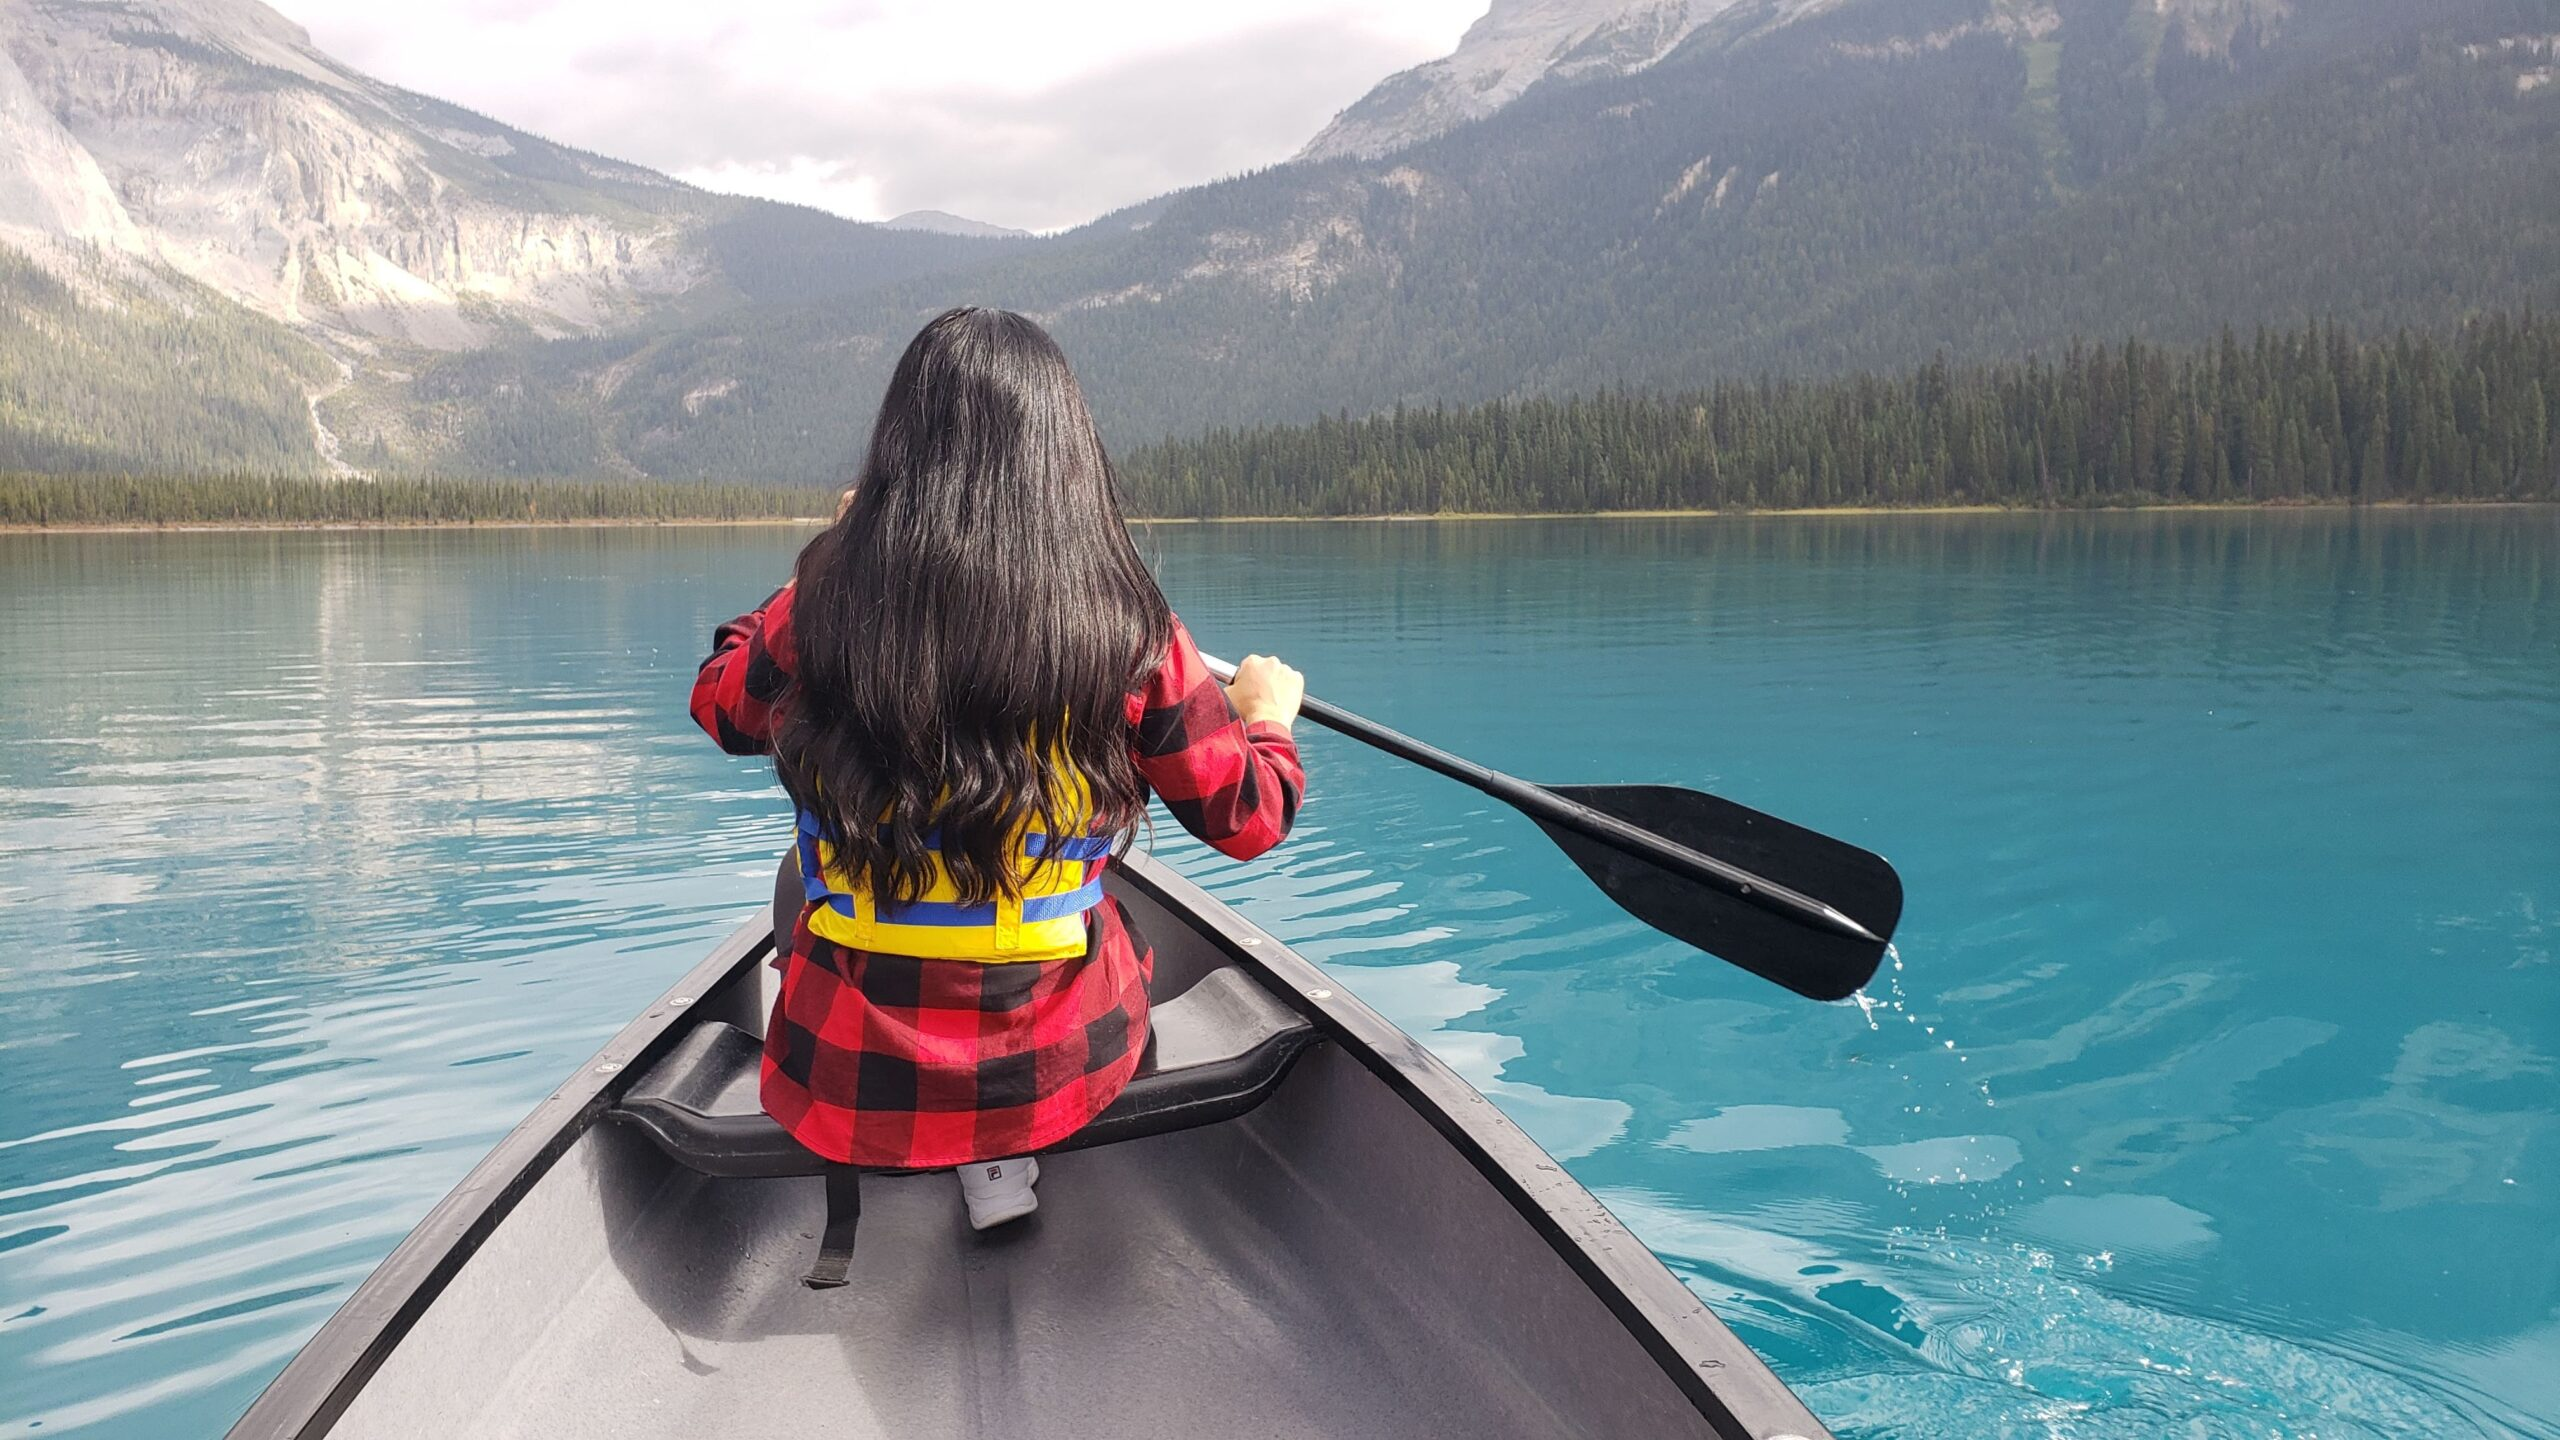 Nicole Canoeing at Emerald Lake